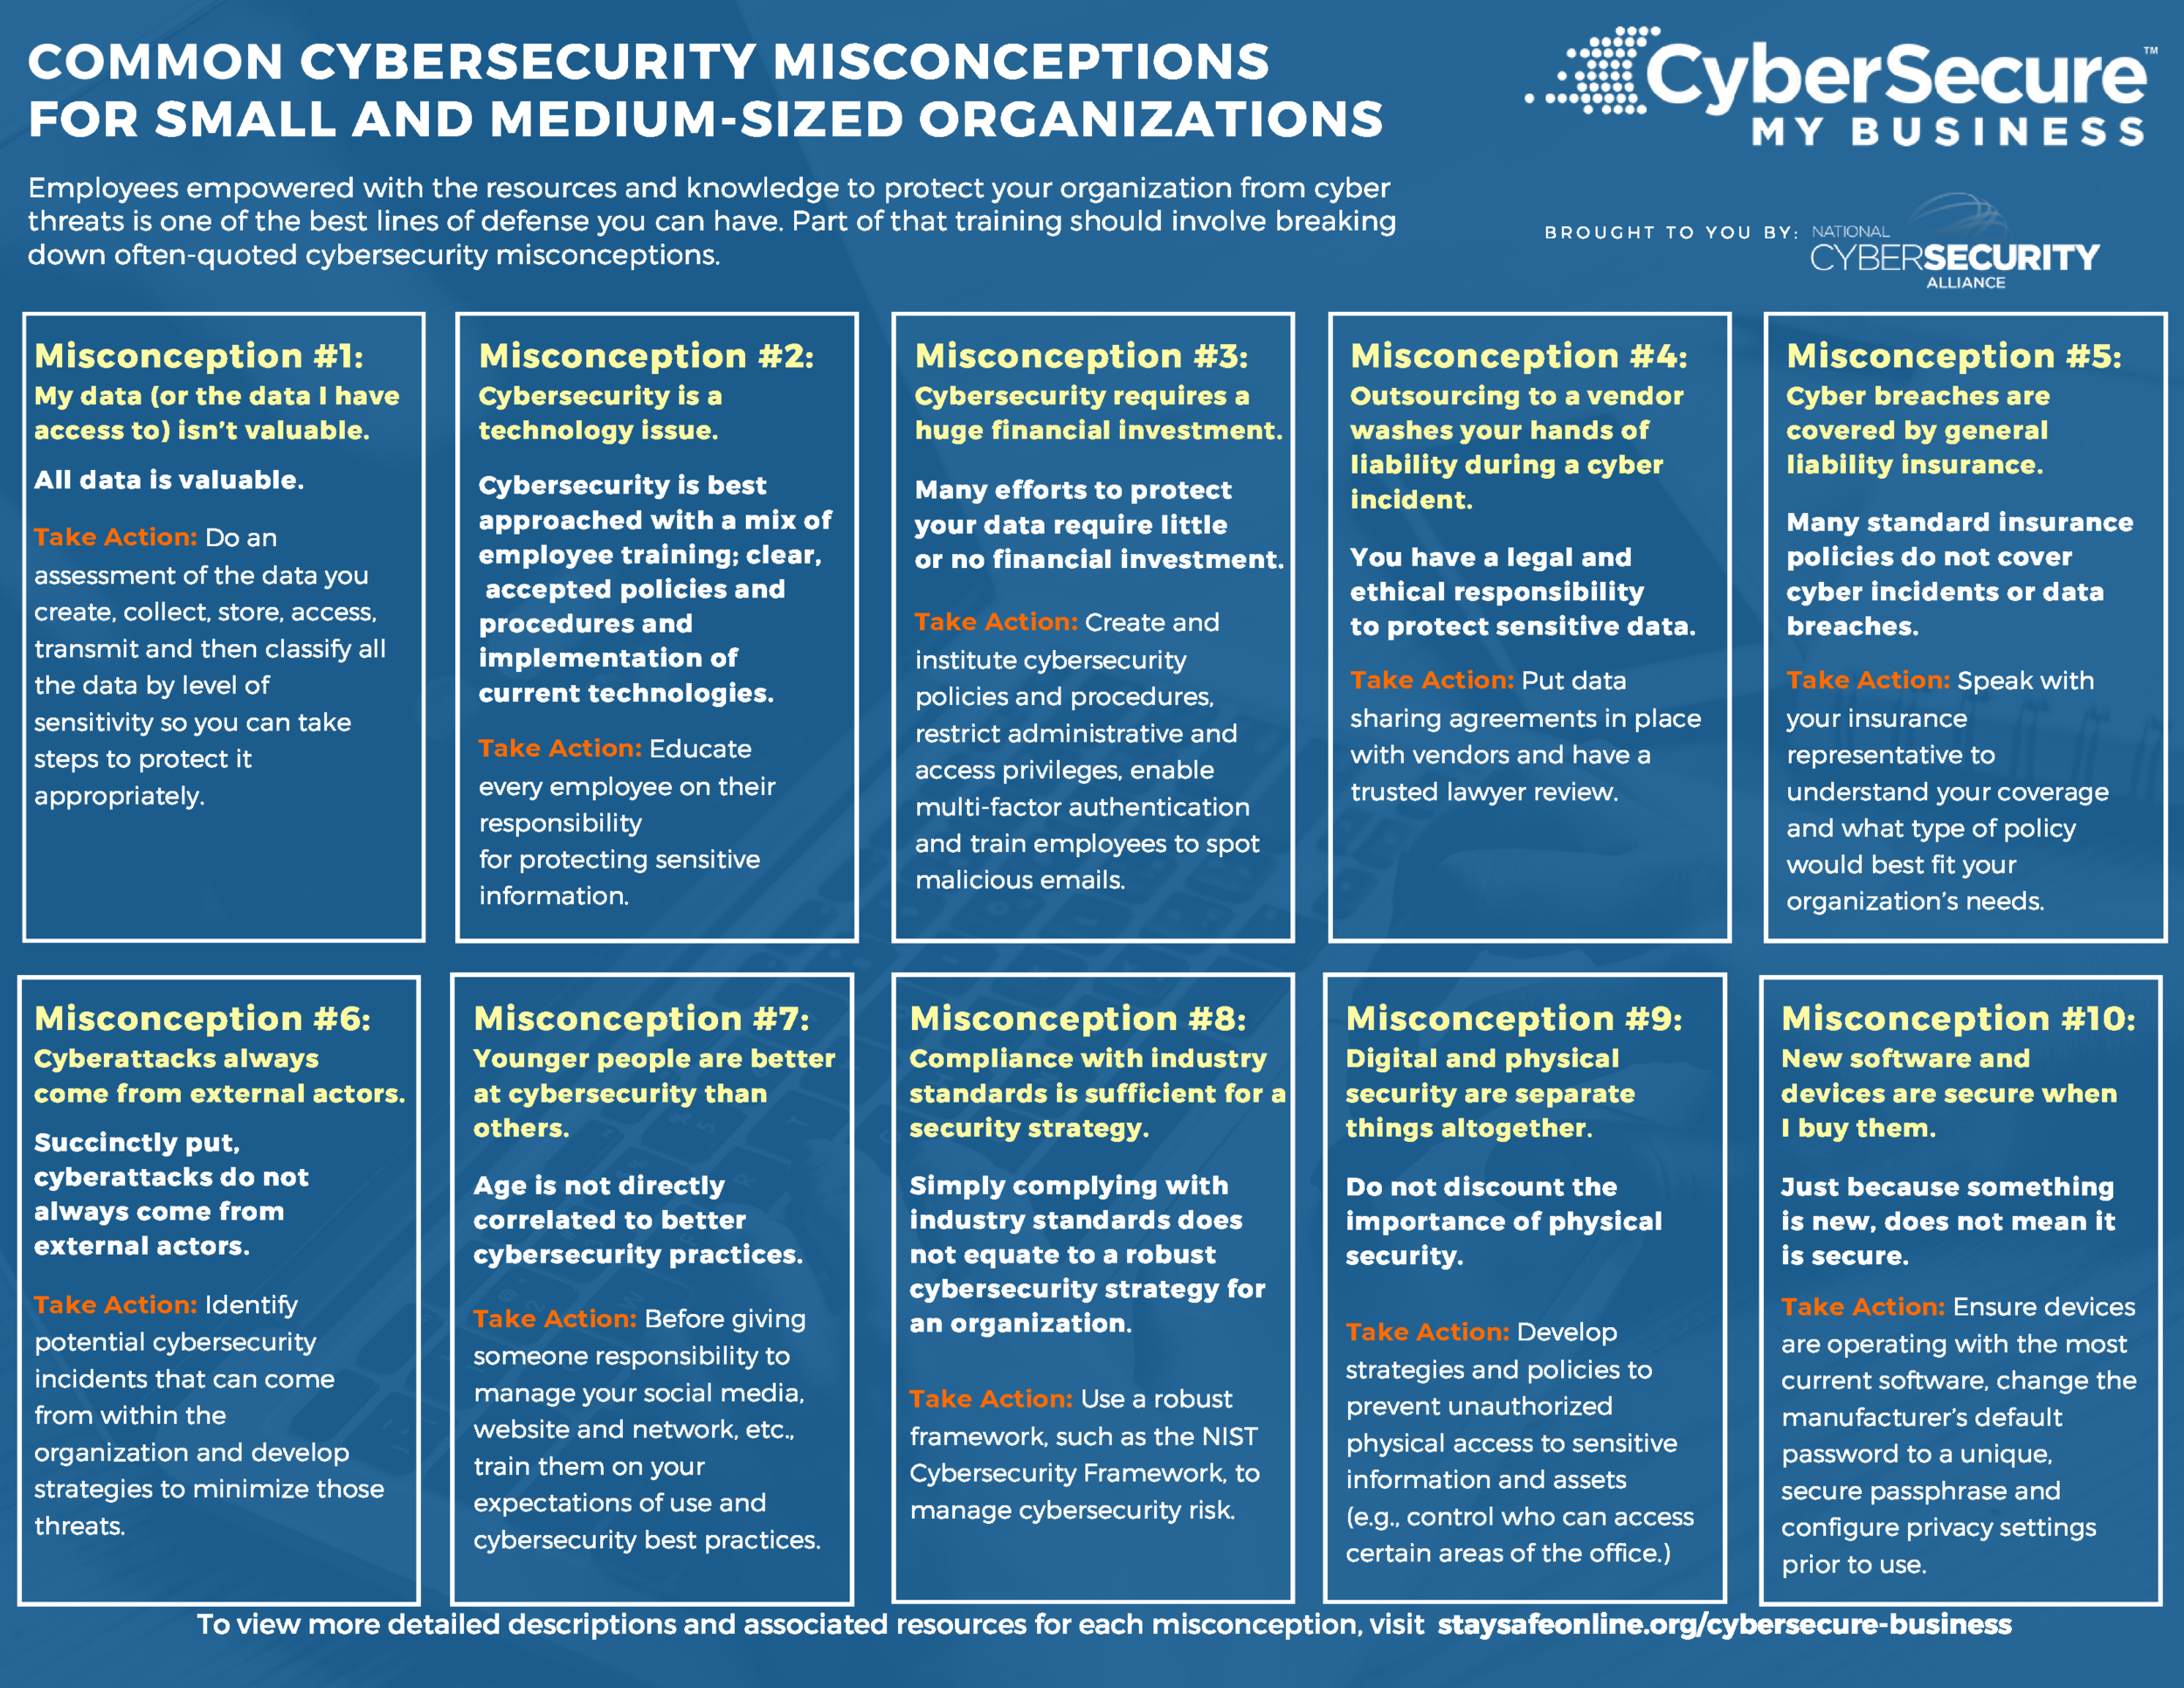 Common CyberSecurity Misconceptions for Small and Medium-sized Organizations